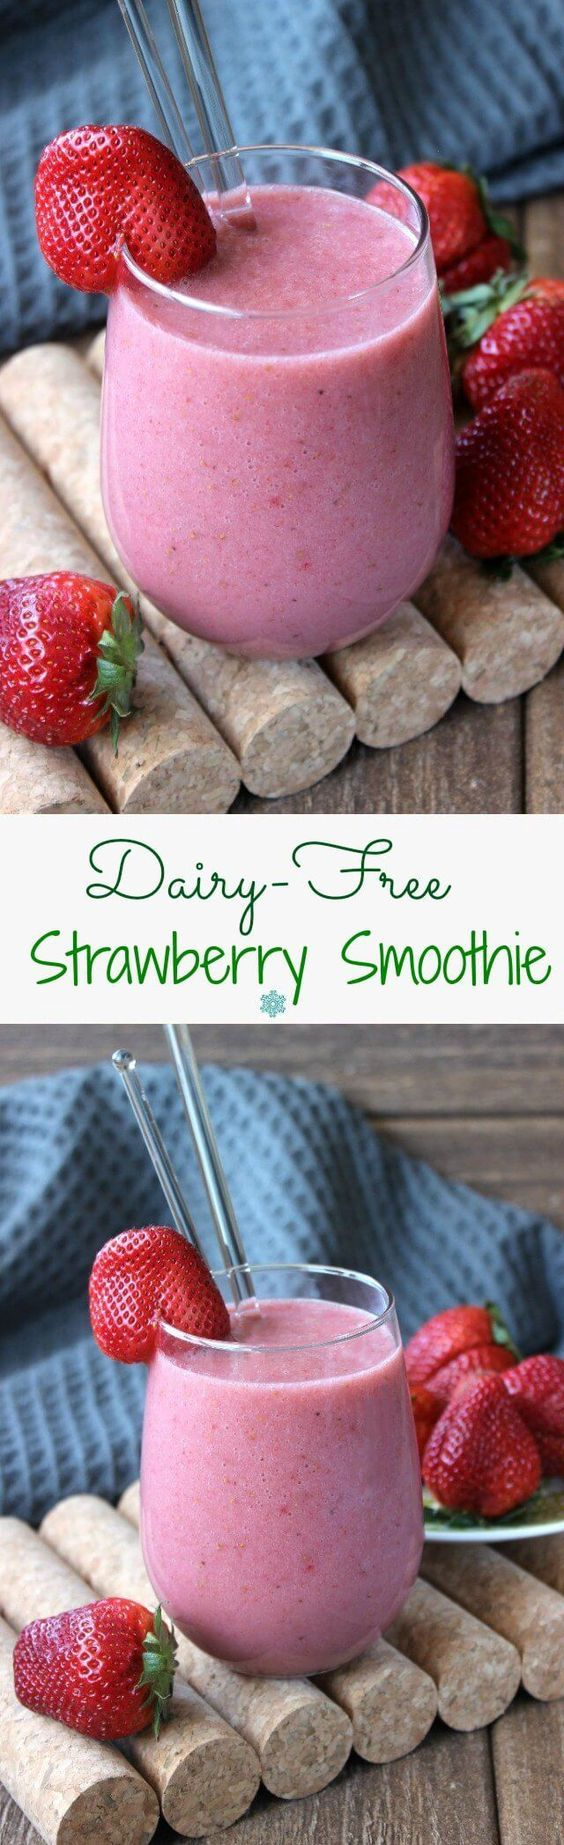 cool Dairy-Free Strawberry Smoothie